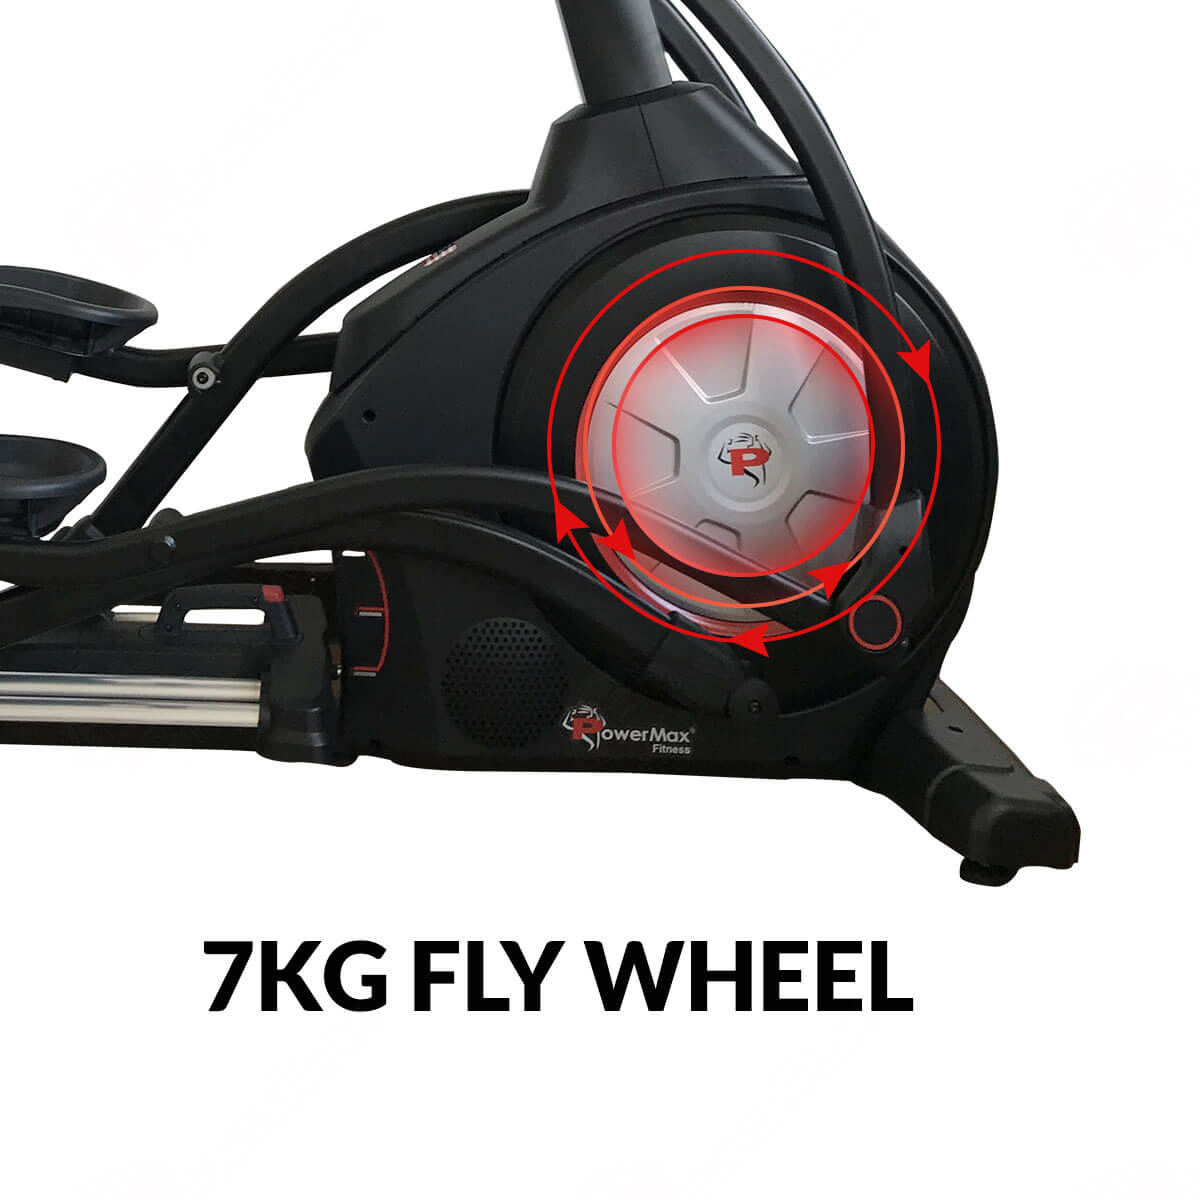 EC-1600 Commercial Elliptical Trainer with Incline